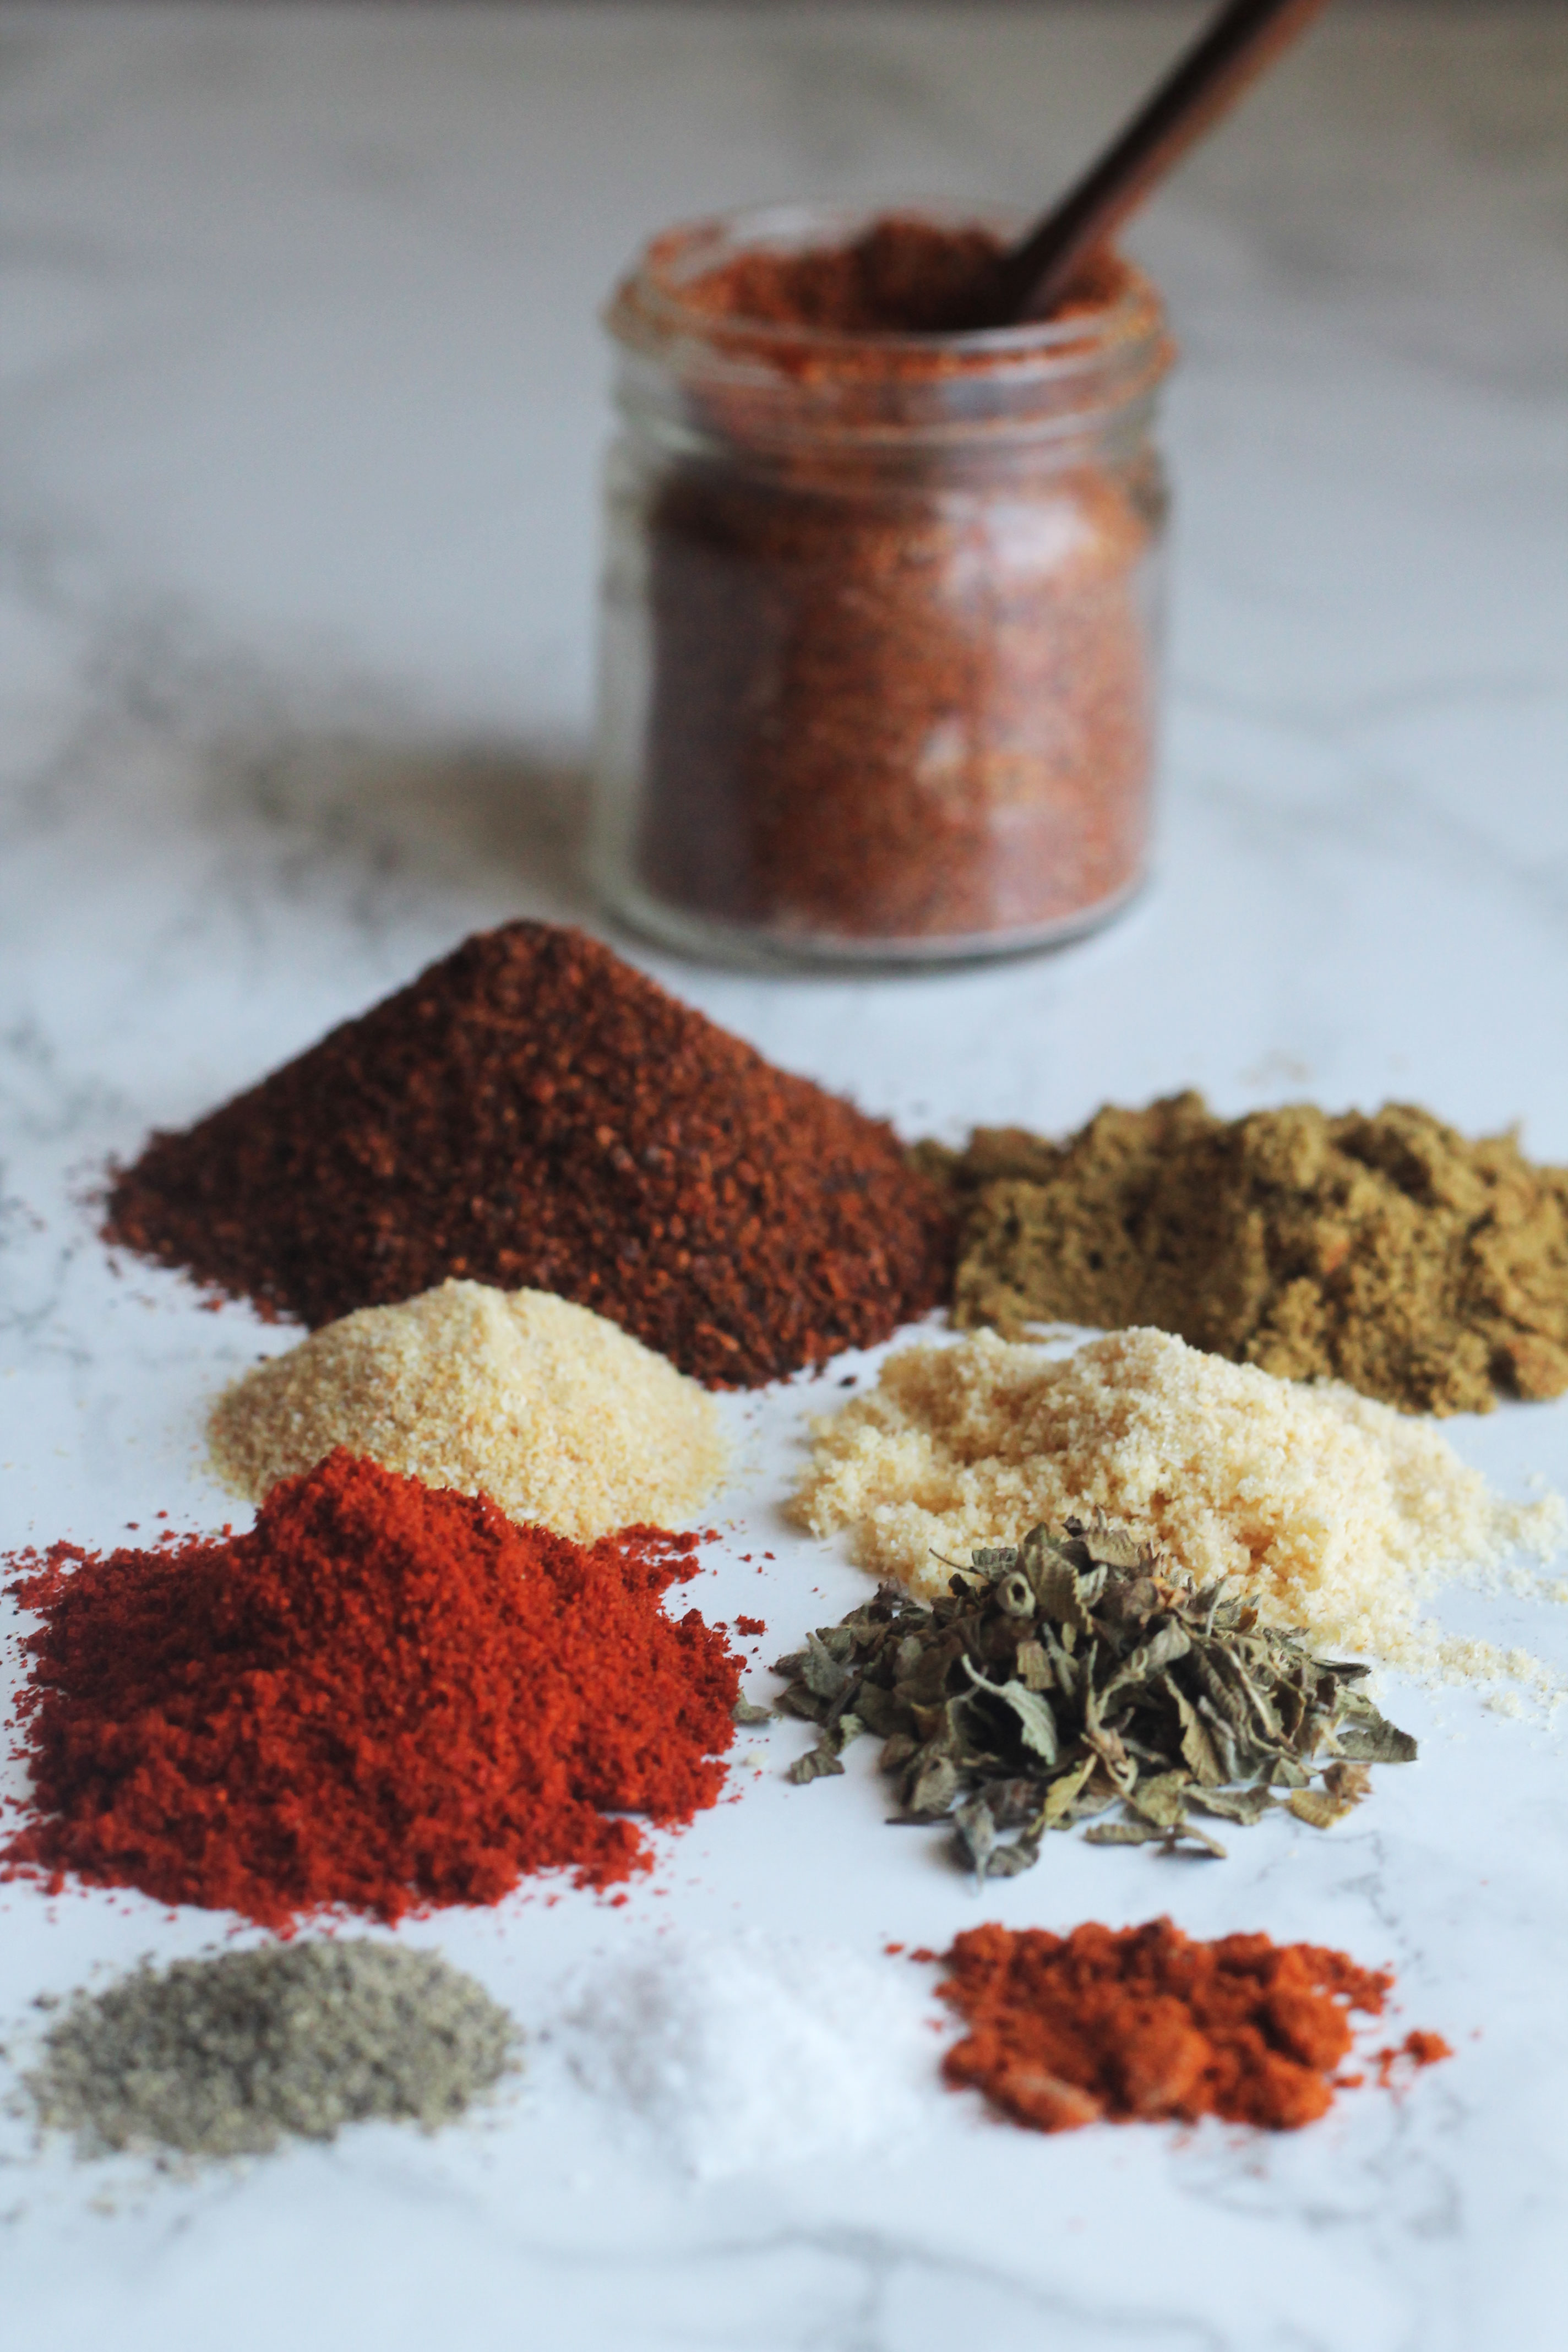 Make your own taco spice mix at home